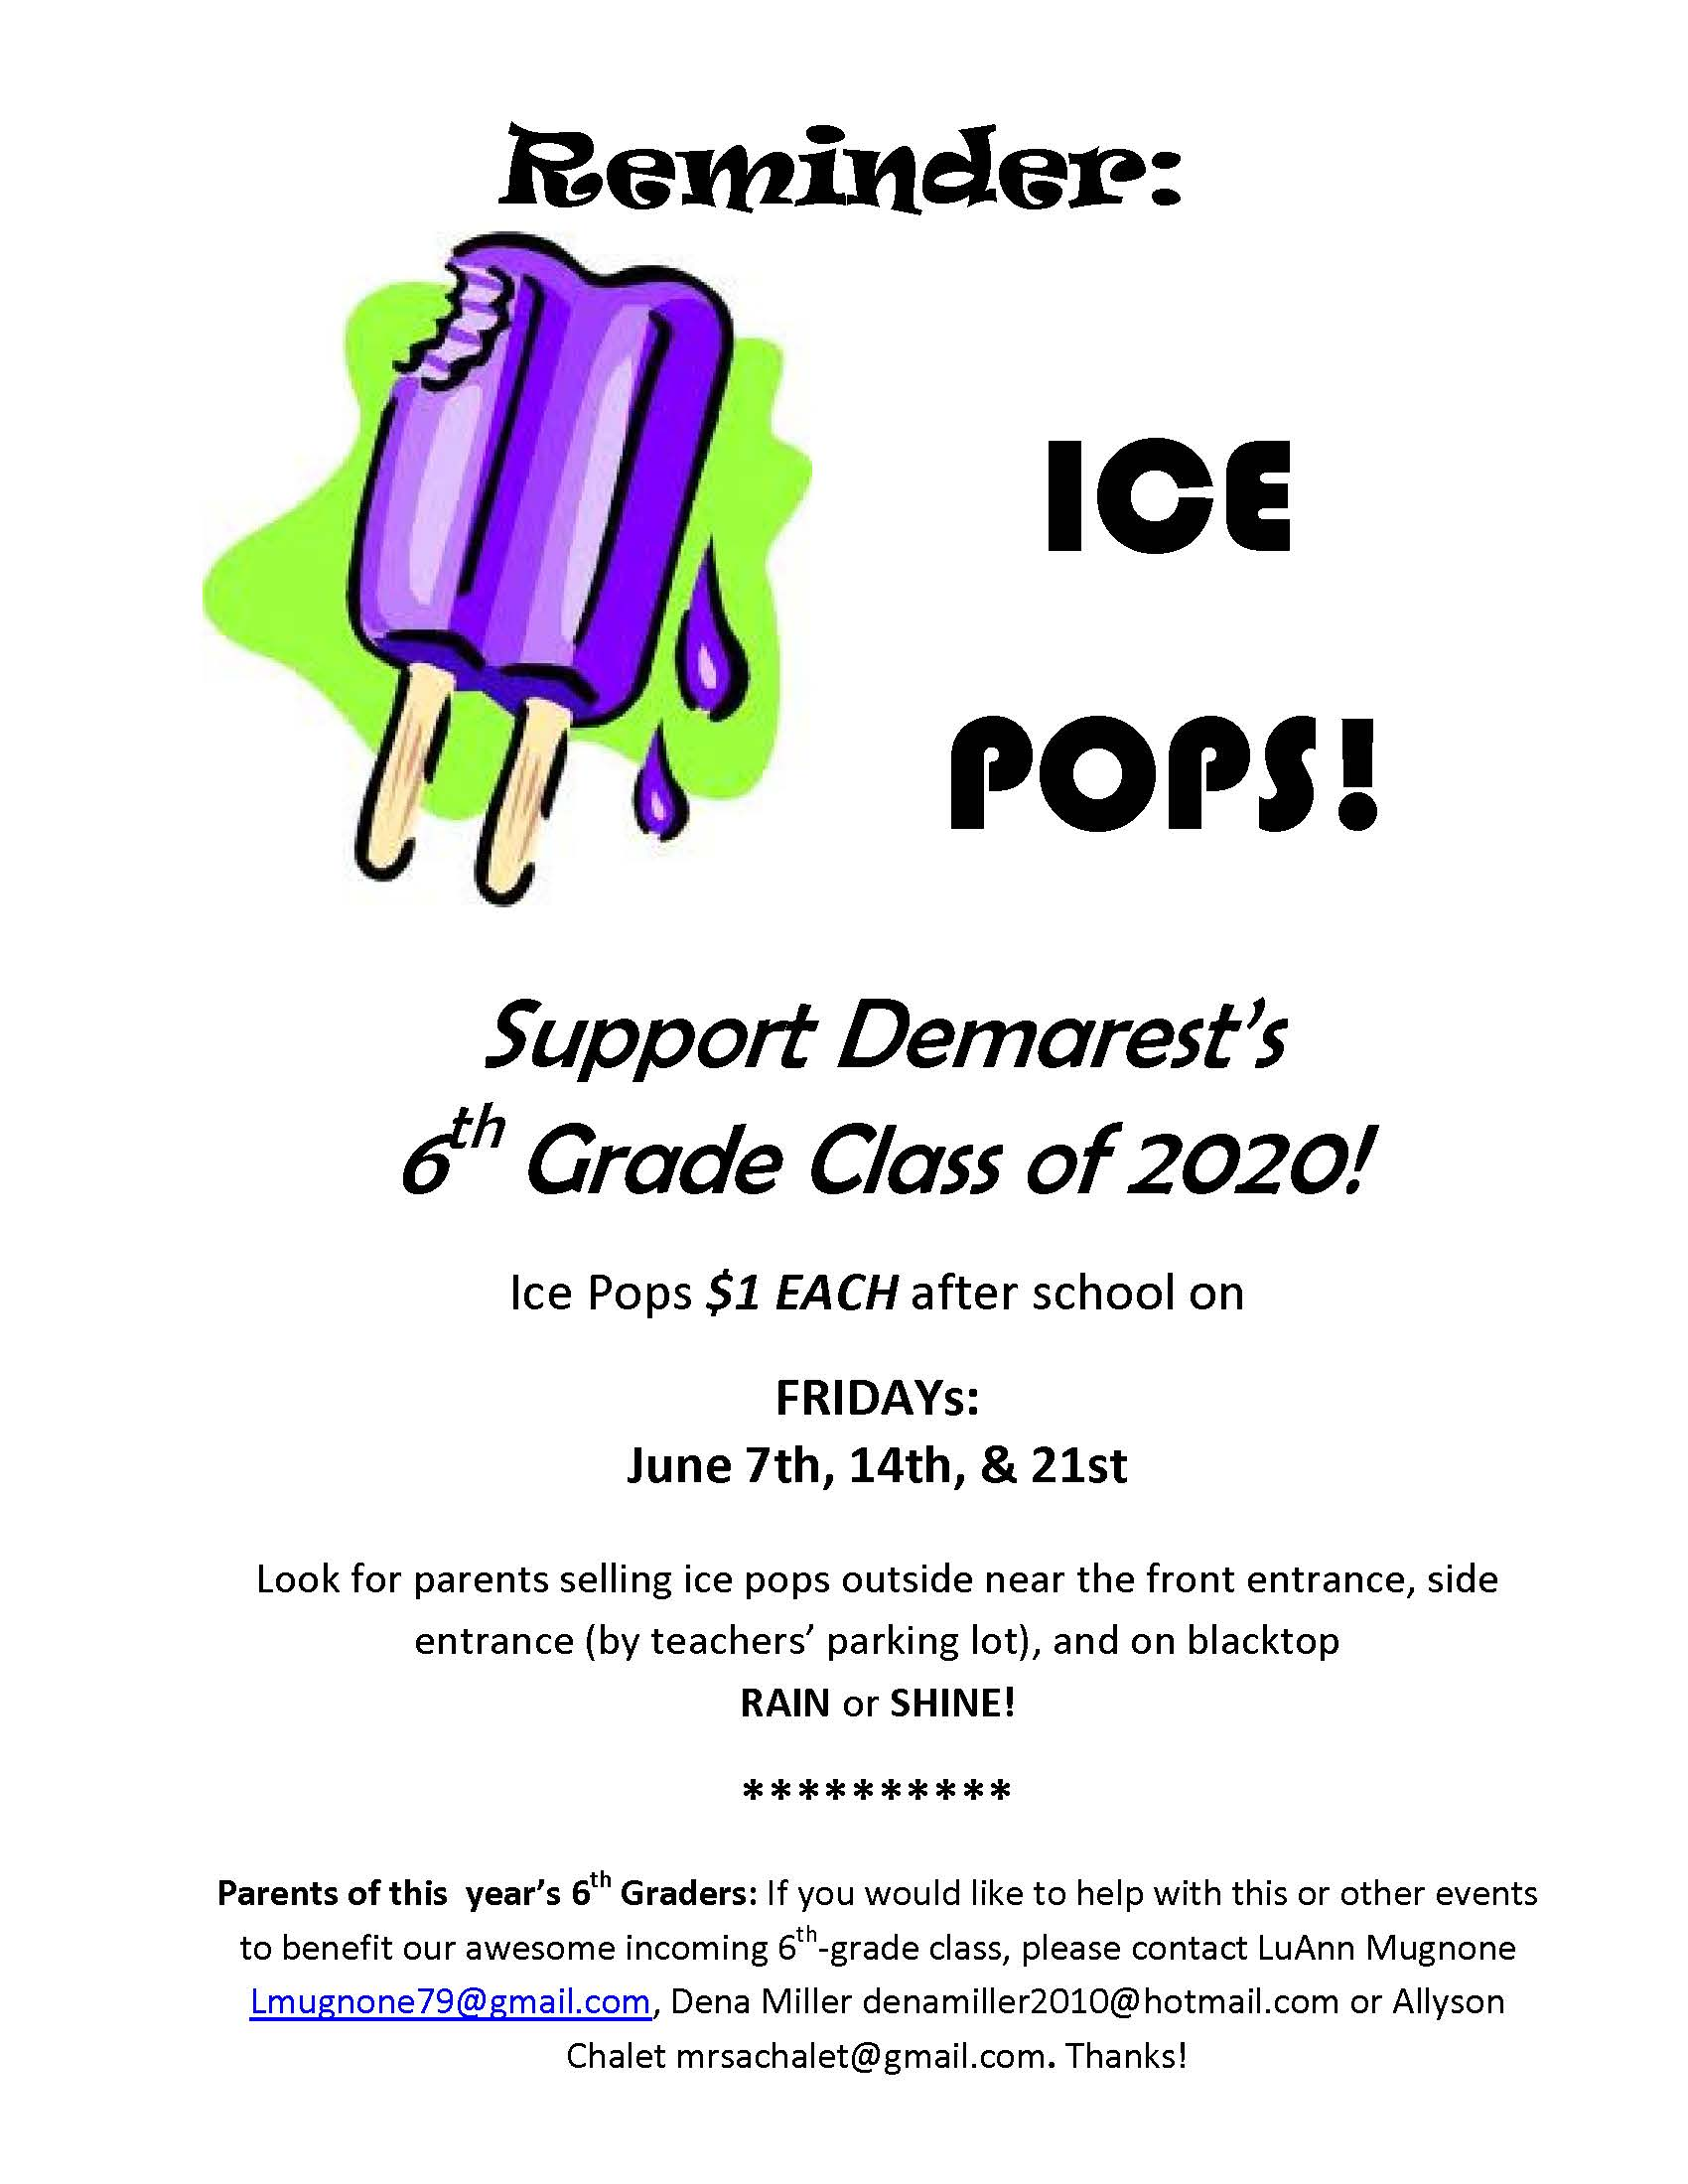 Support the 6th Graders of 2020 – Demarest Home and School Association